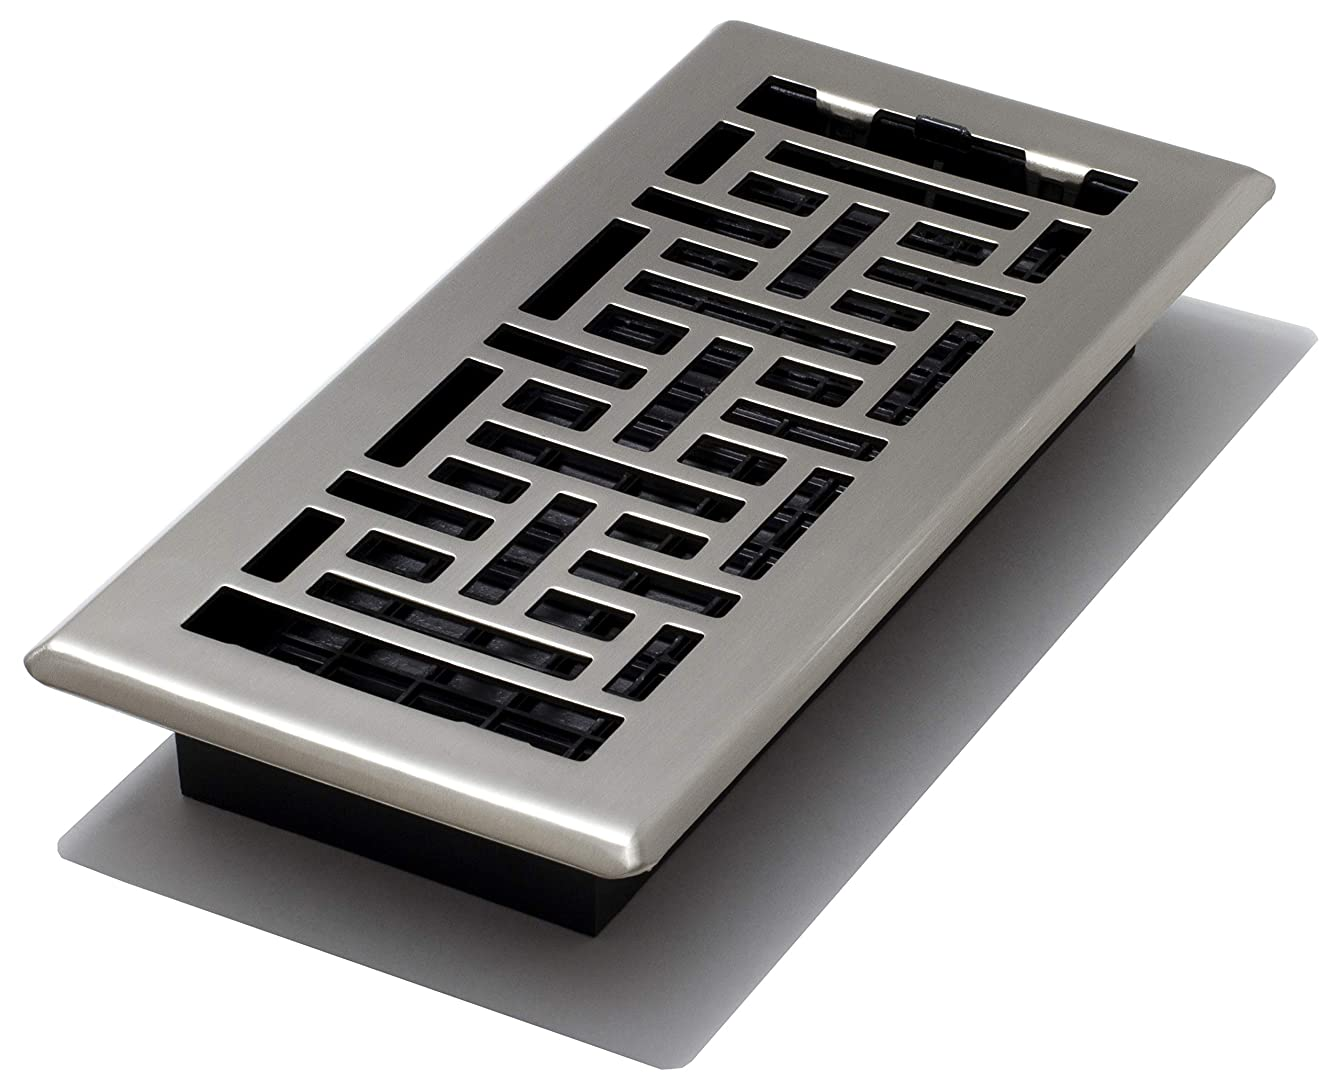 Decor Grates AJH410-NKL Oriental Floor Register, Brushed Nickel, 4-Inch by 10-Inch